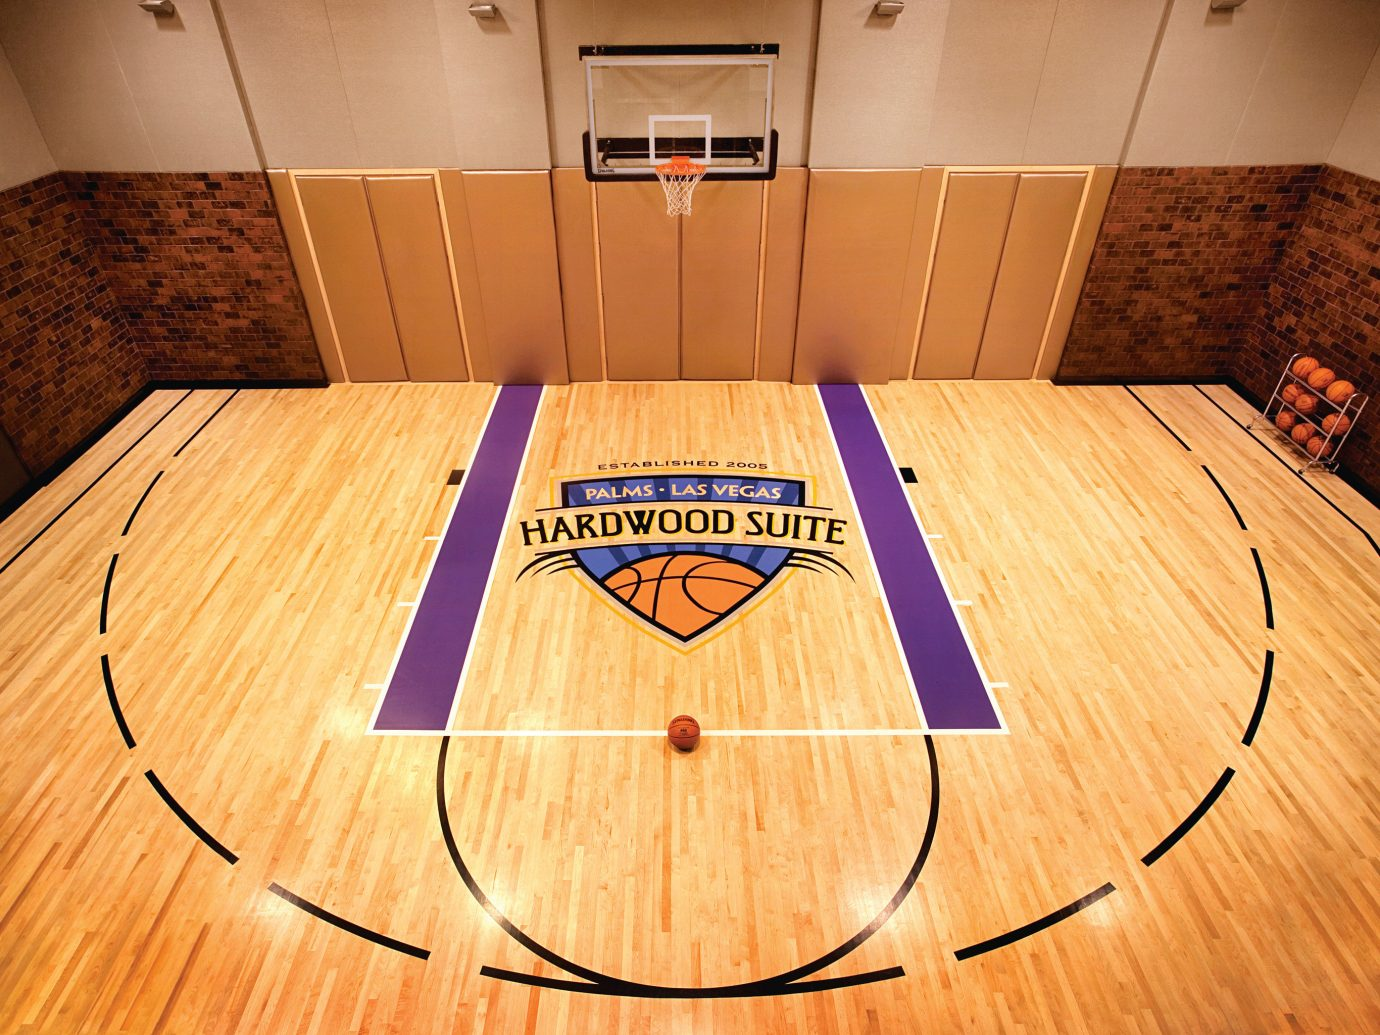 Private basketball court in the Hardwood Suite, Palms Casino Resort